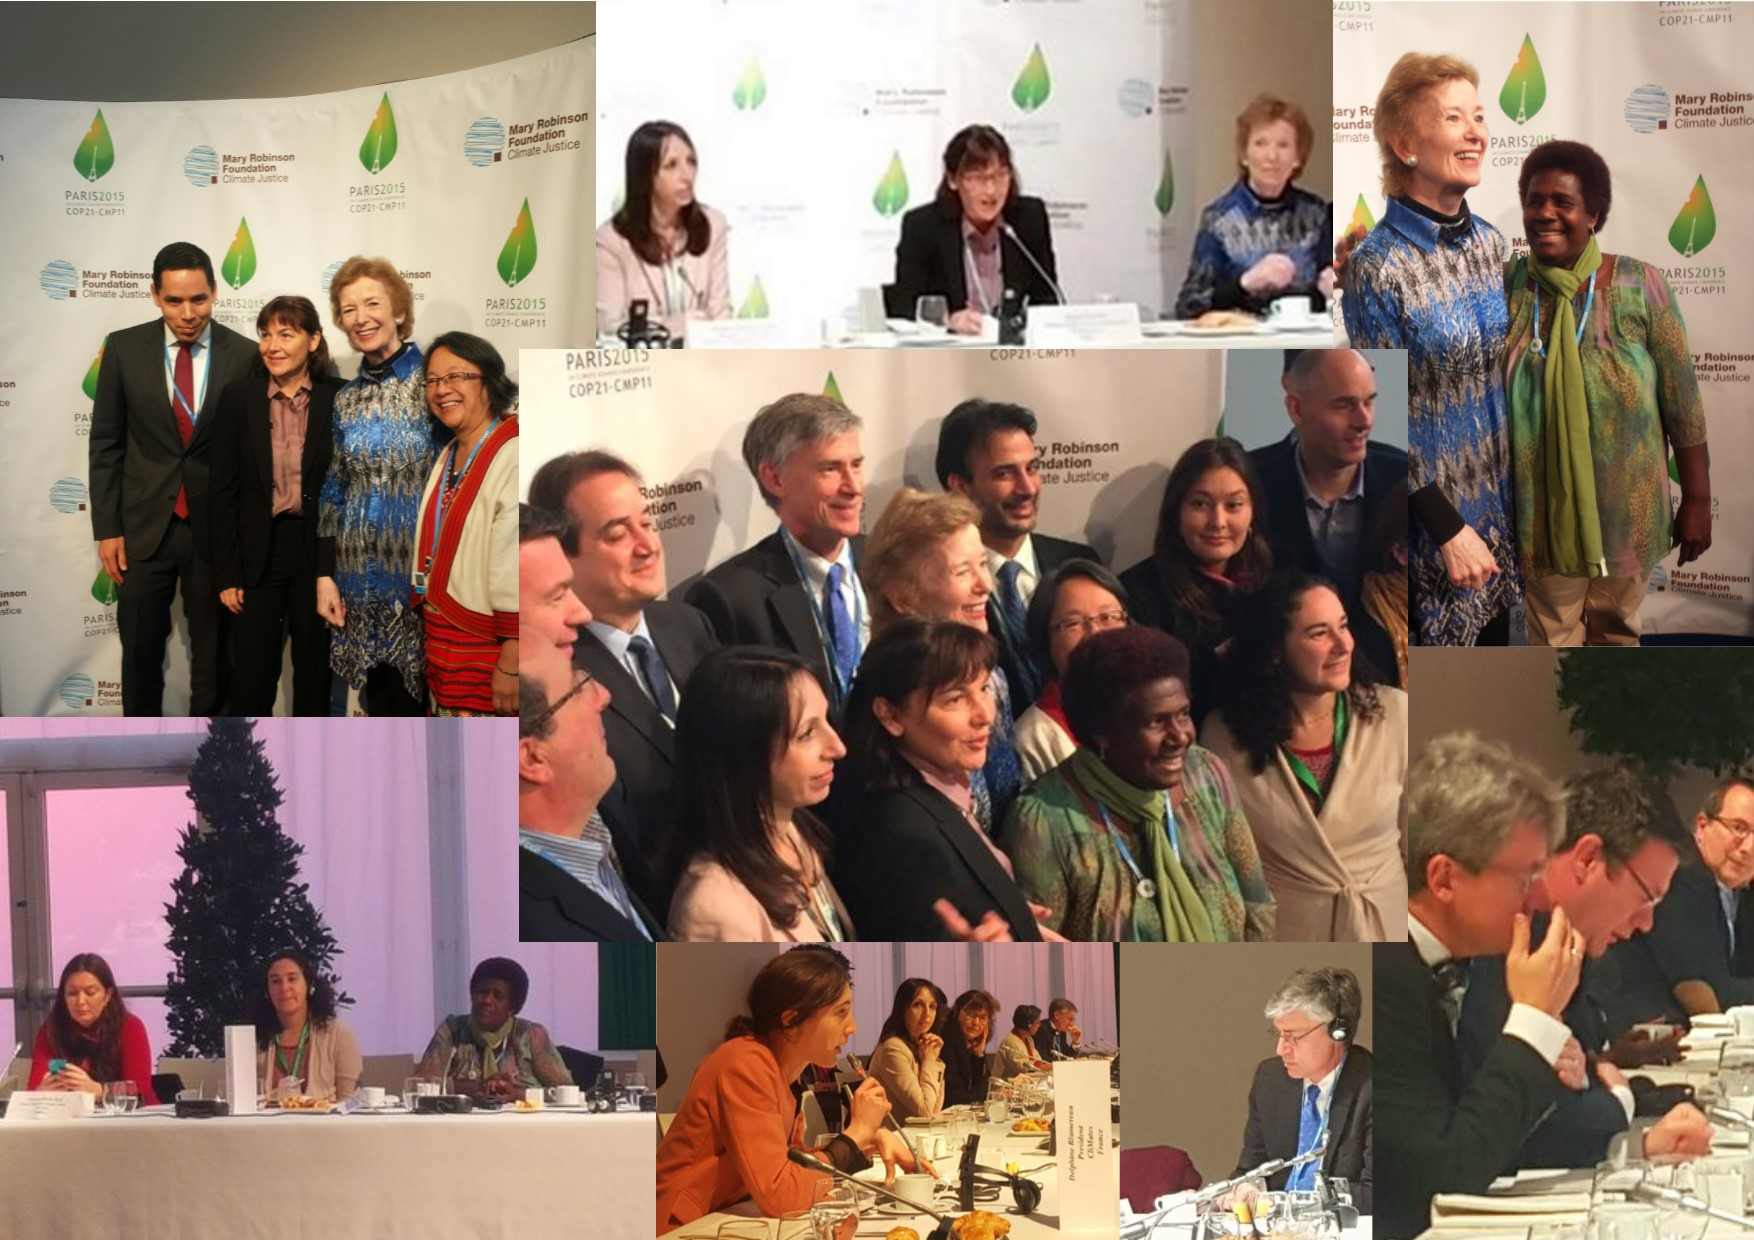 Celebrating Human Rights Day at COP21 at a high-level breakfast meeting on the occasion of human rights, co-hosted by the COP21 Presidency and the Foundation. 10 December 2015